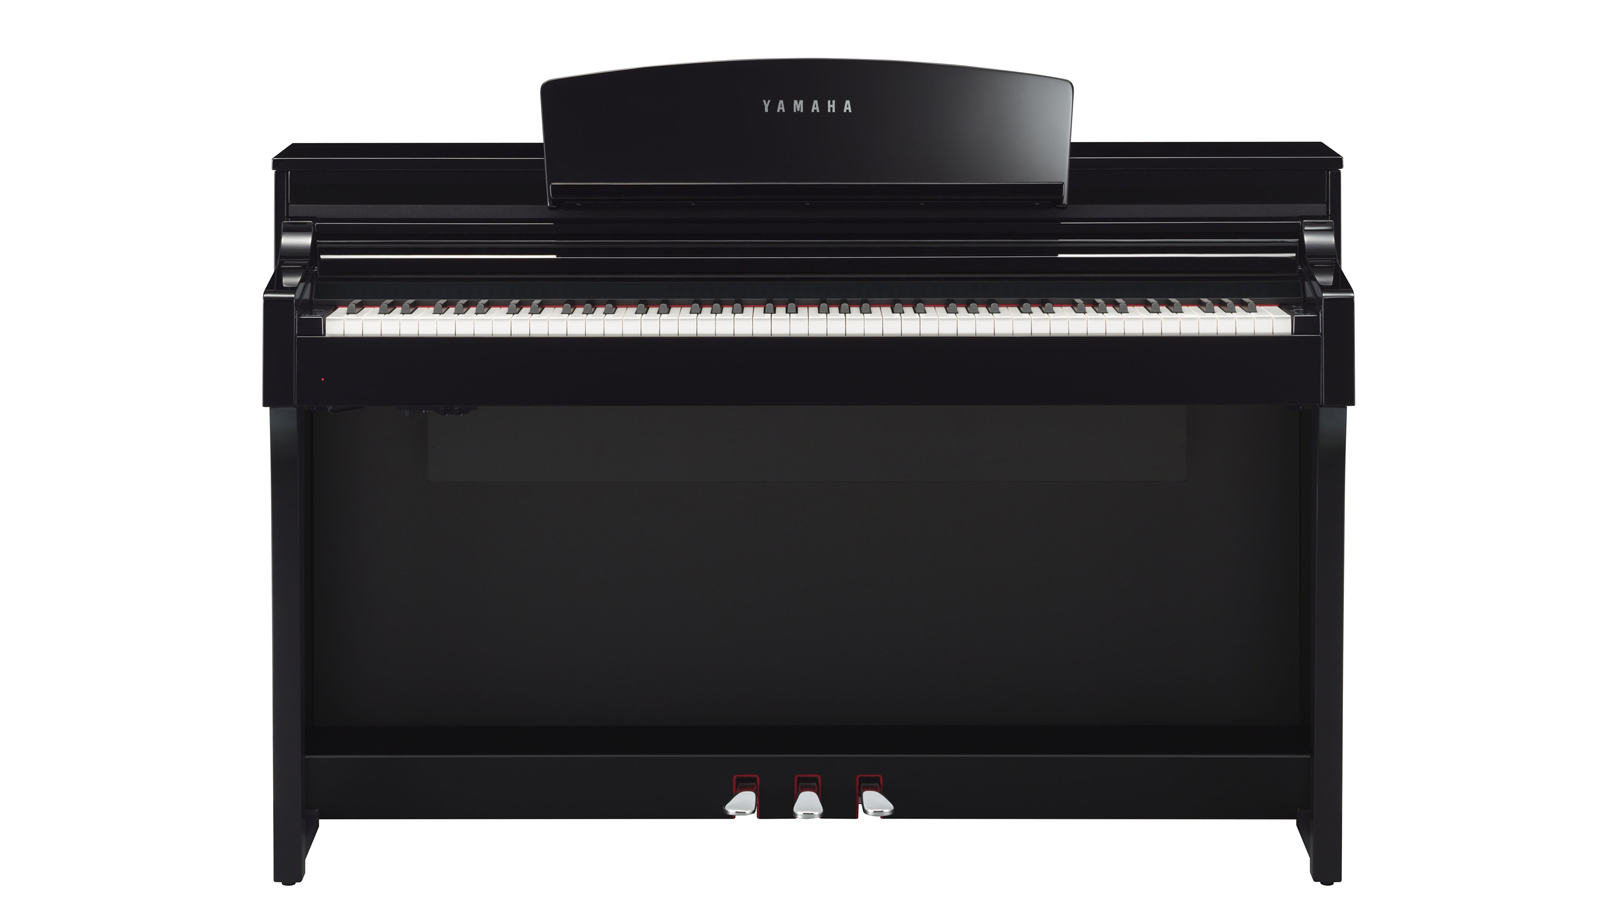 Yamaha CSP-170 PE DigitalPiano Smart Pianist